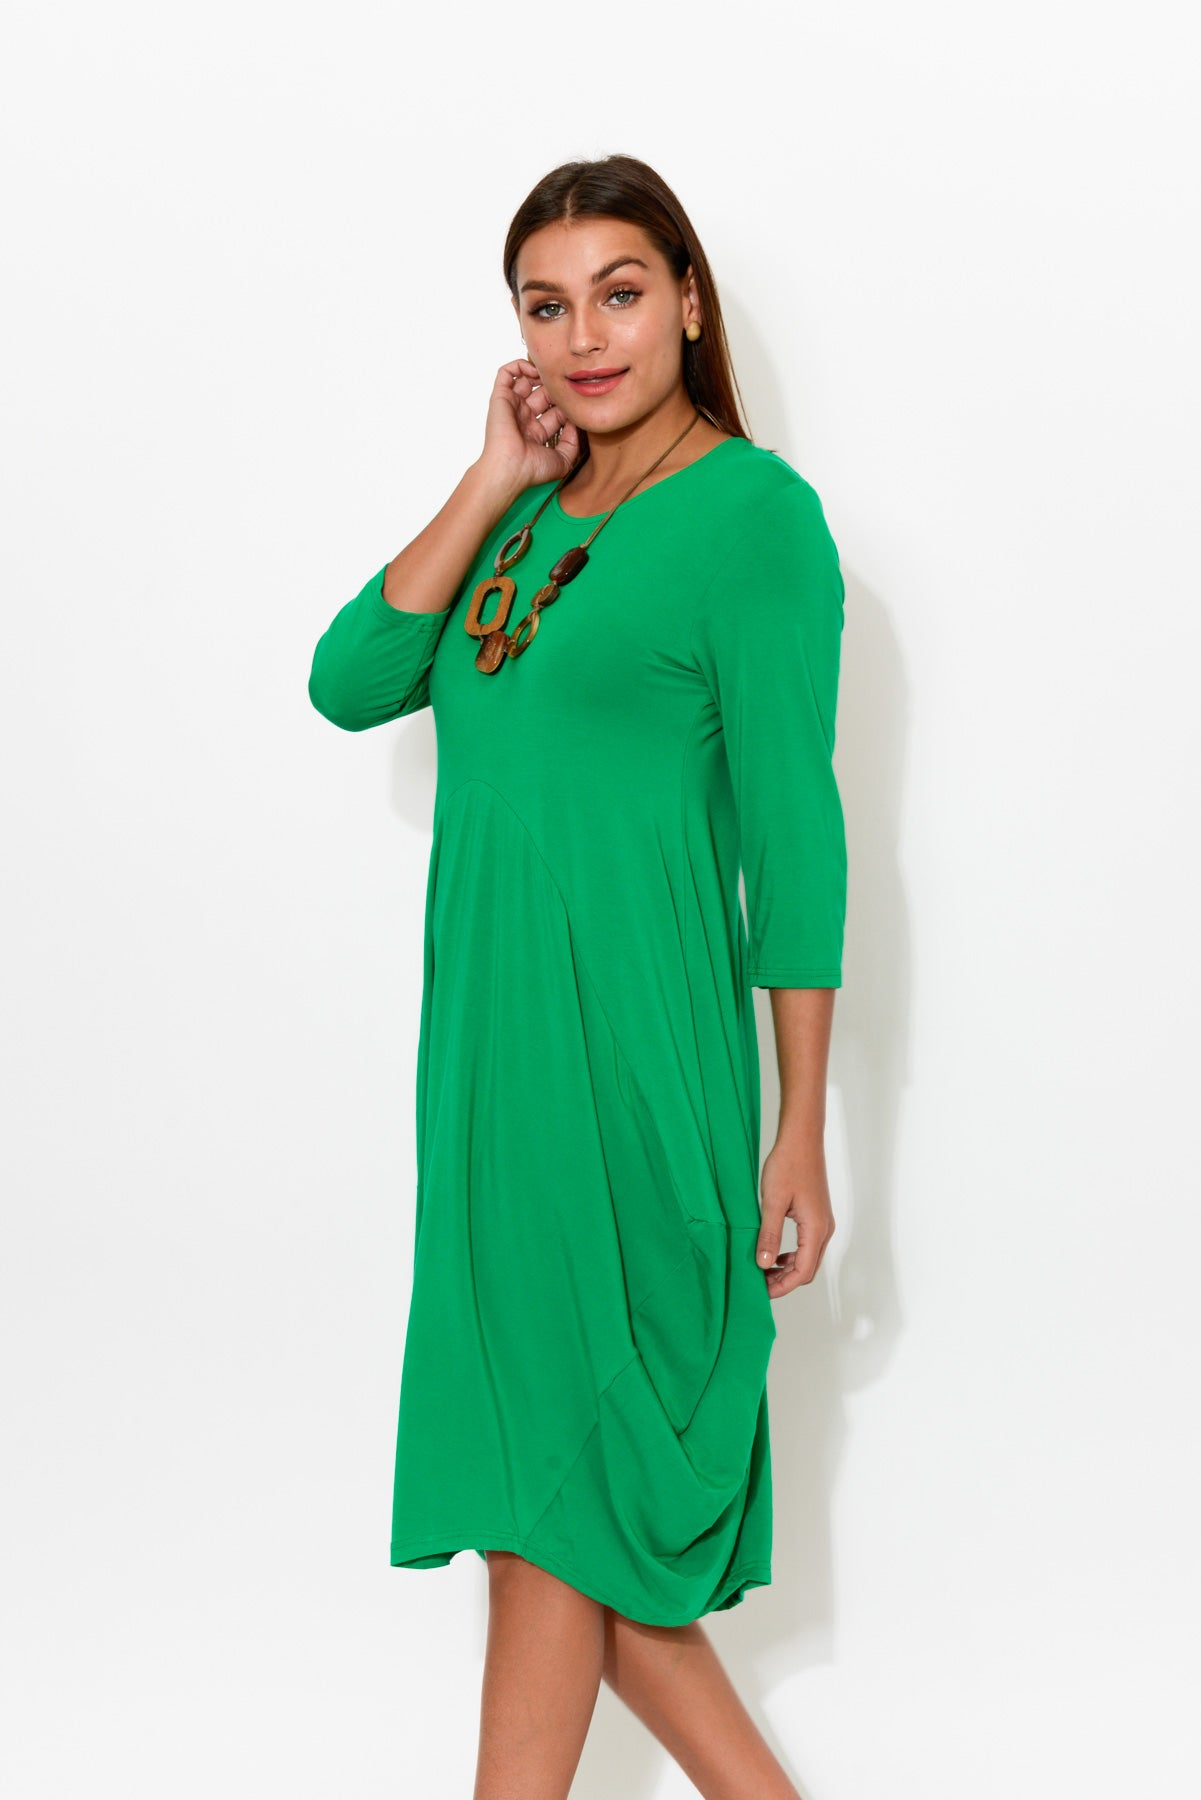 Ayla Green Bamboo Dress - Blue Bungalow